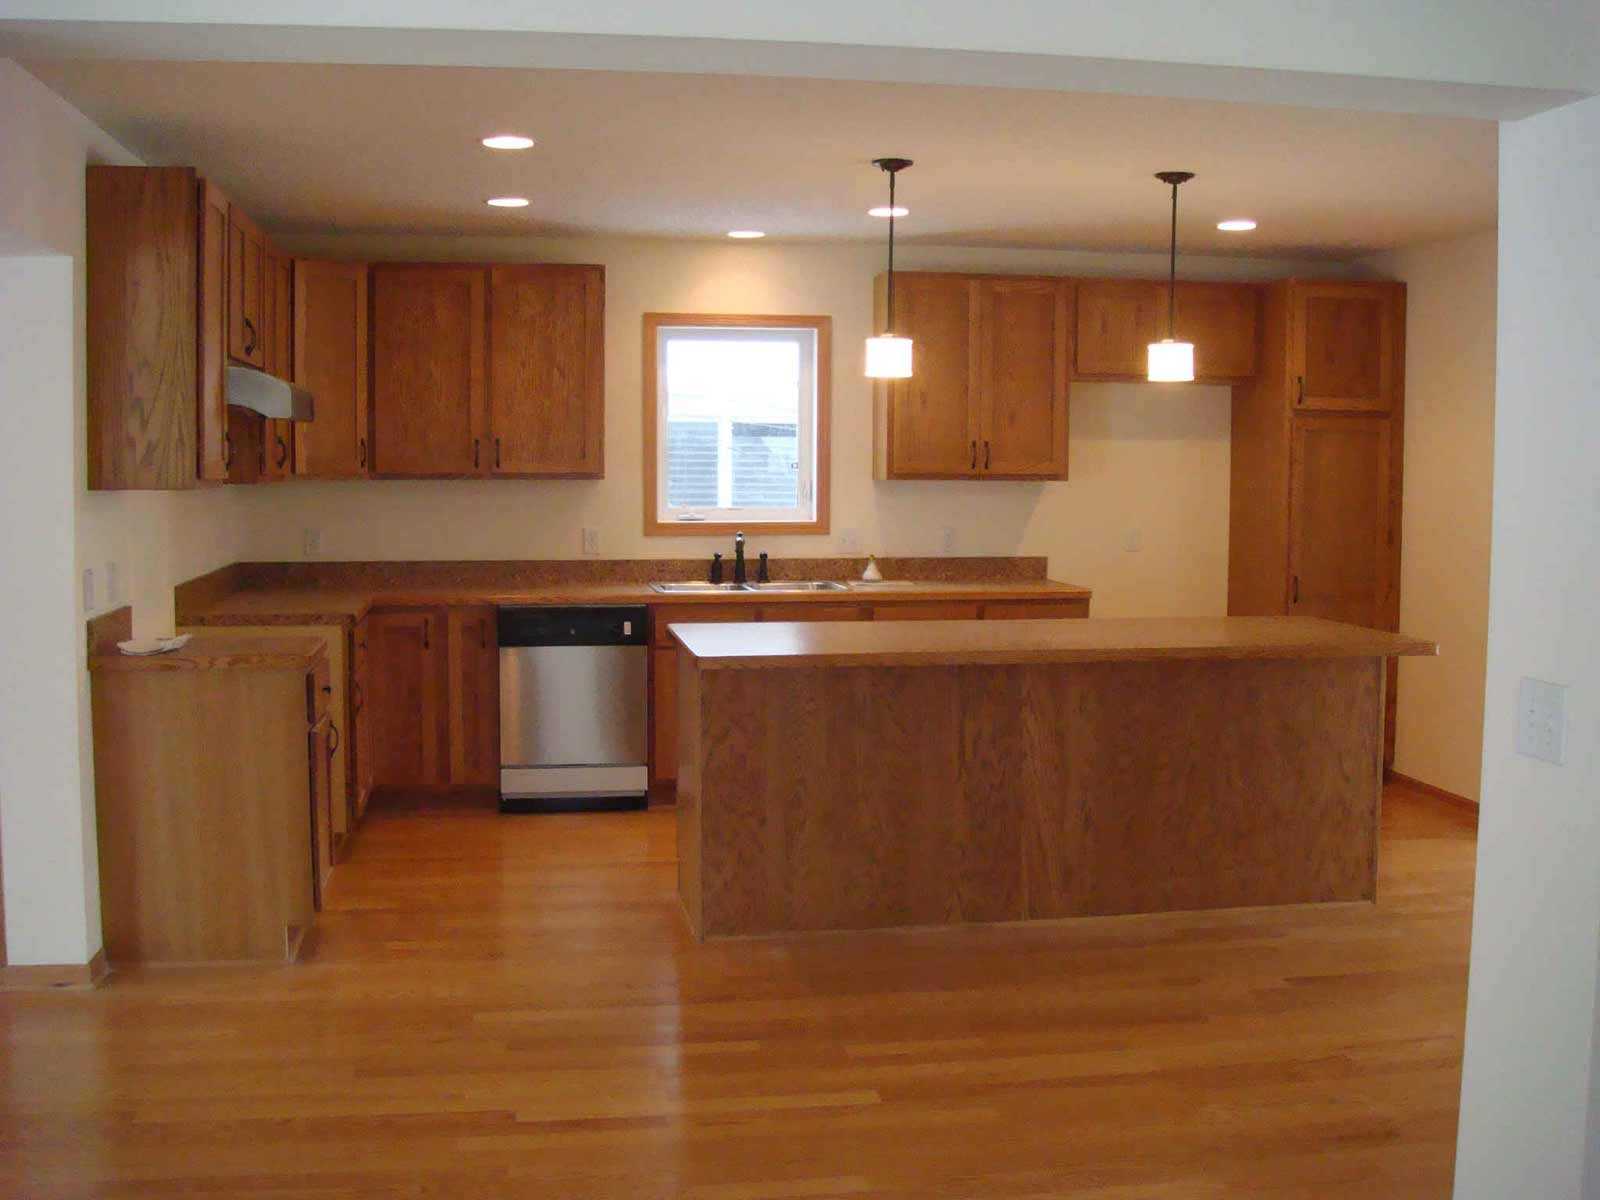 laminate flooring kitchen cabinets decor wood flooring in kitchen with hardwood flooring for kitchen ... JBXLWVB